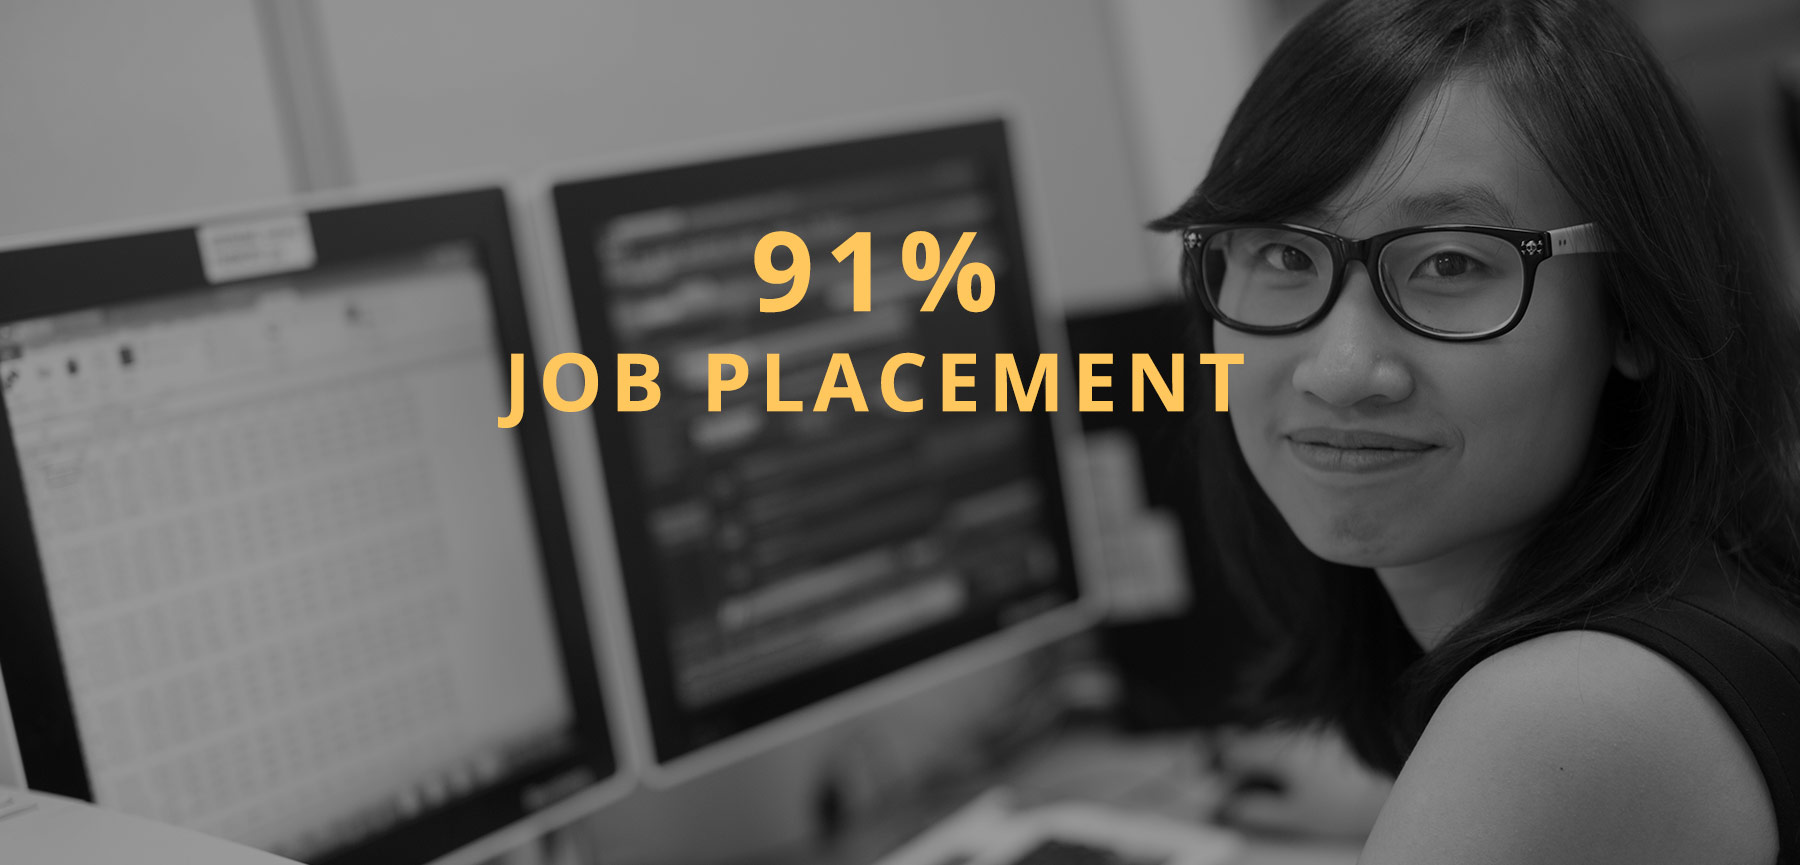 91% job placement